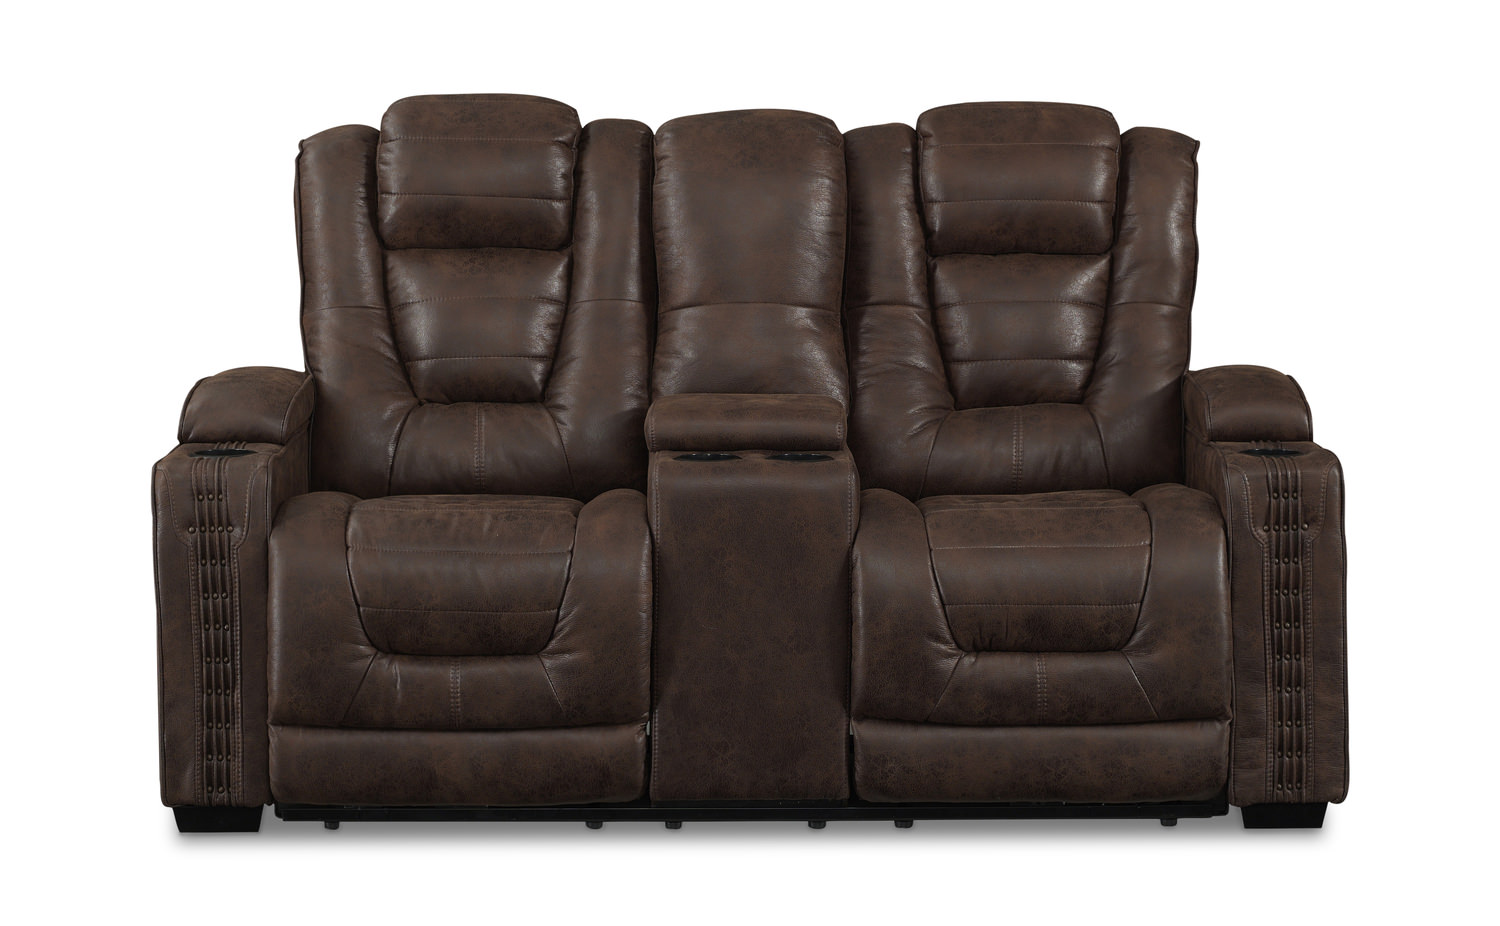 Fabulous Morph Power Reclining Loveseat With Console Gamerscity Chair Design For Home Gamerscityorg